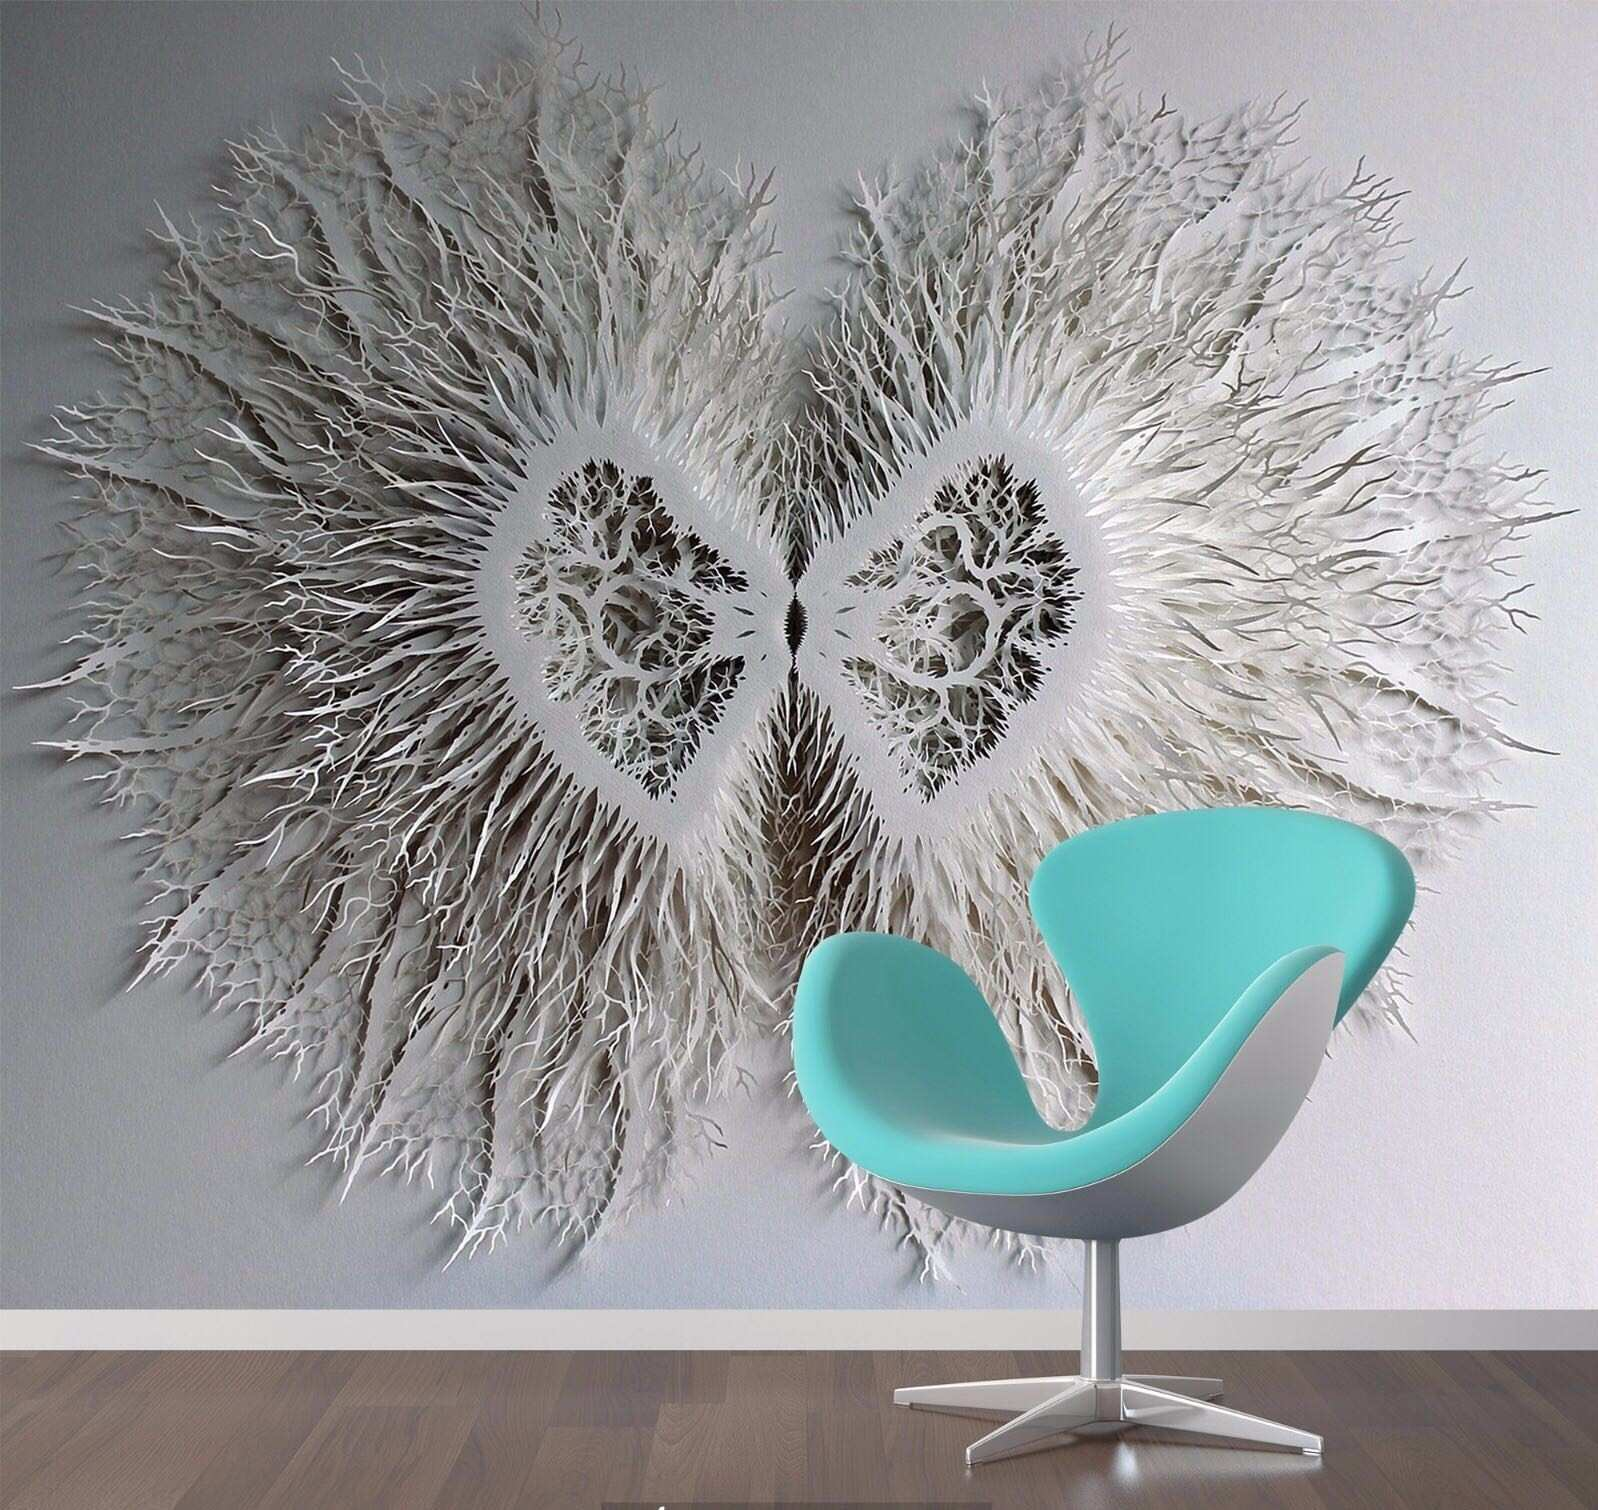 Custom Wall Murals From Custom Wall Murals From With